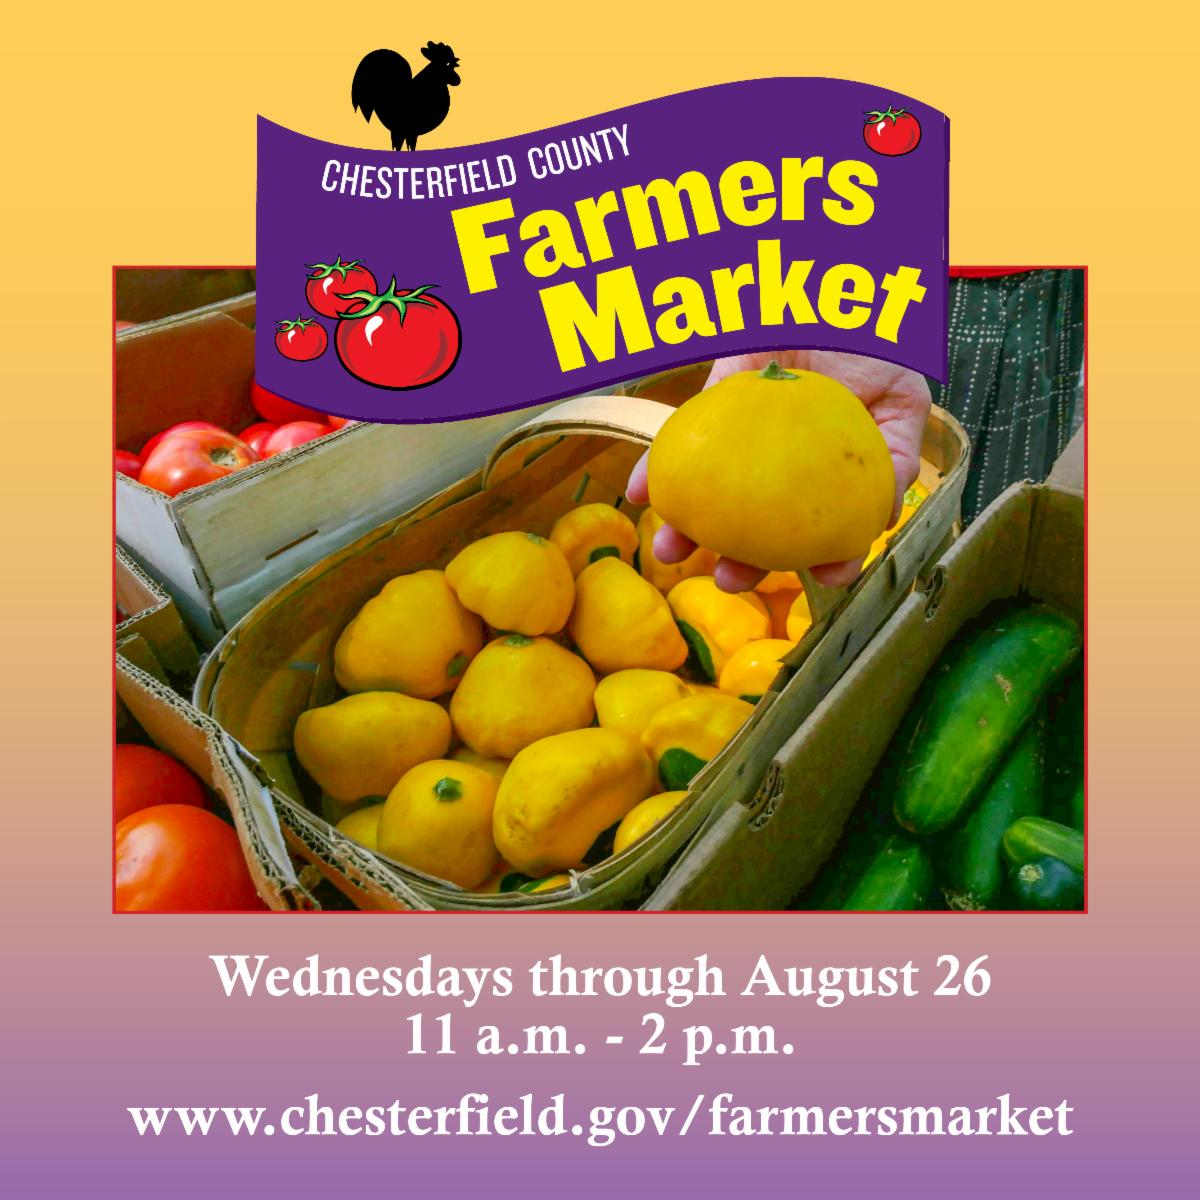 Chesterfield County Farmers Market Wednesdays through August 26 11 a.m. - 2 p.m. www.chesterfield.gov/farmersmarket